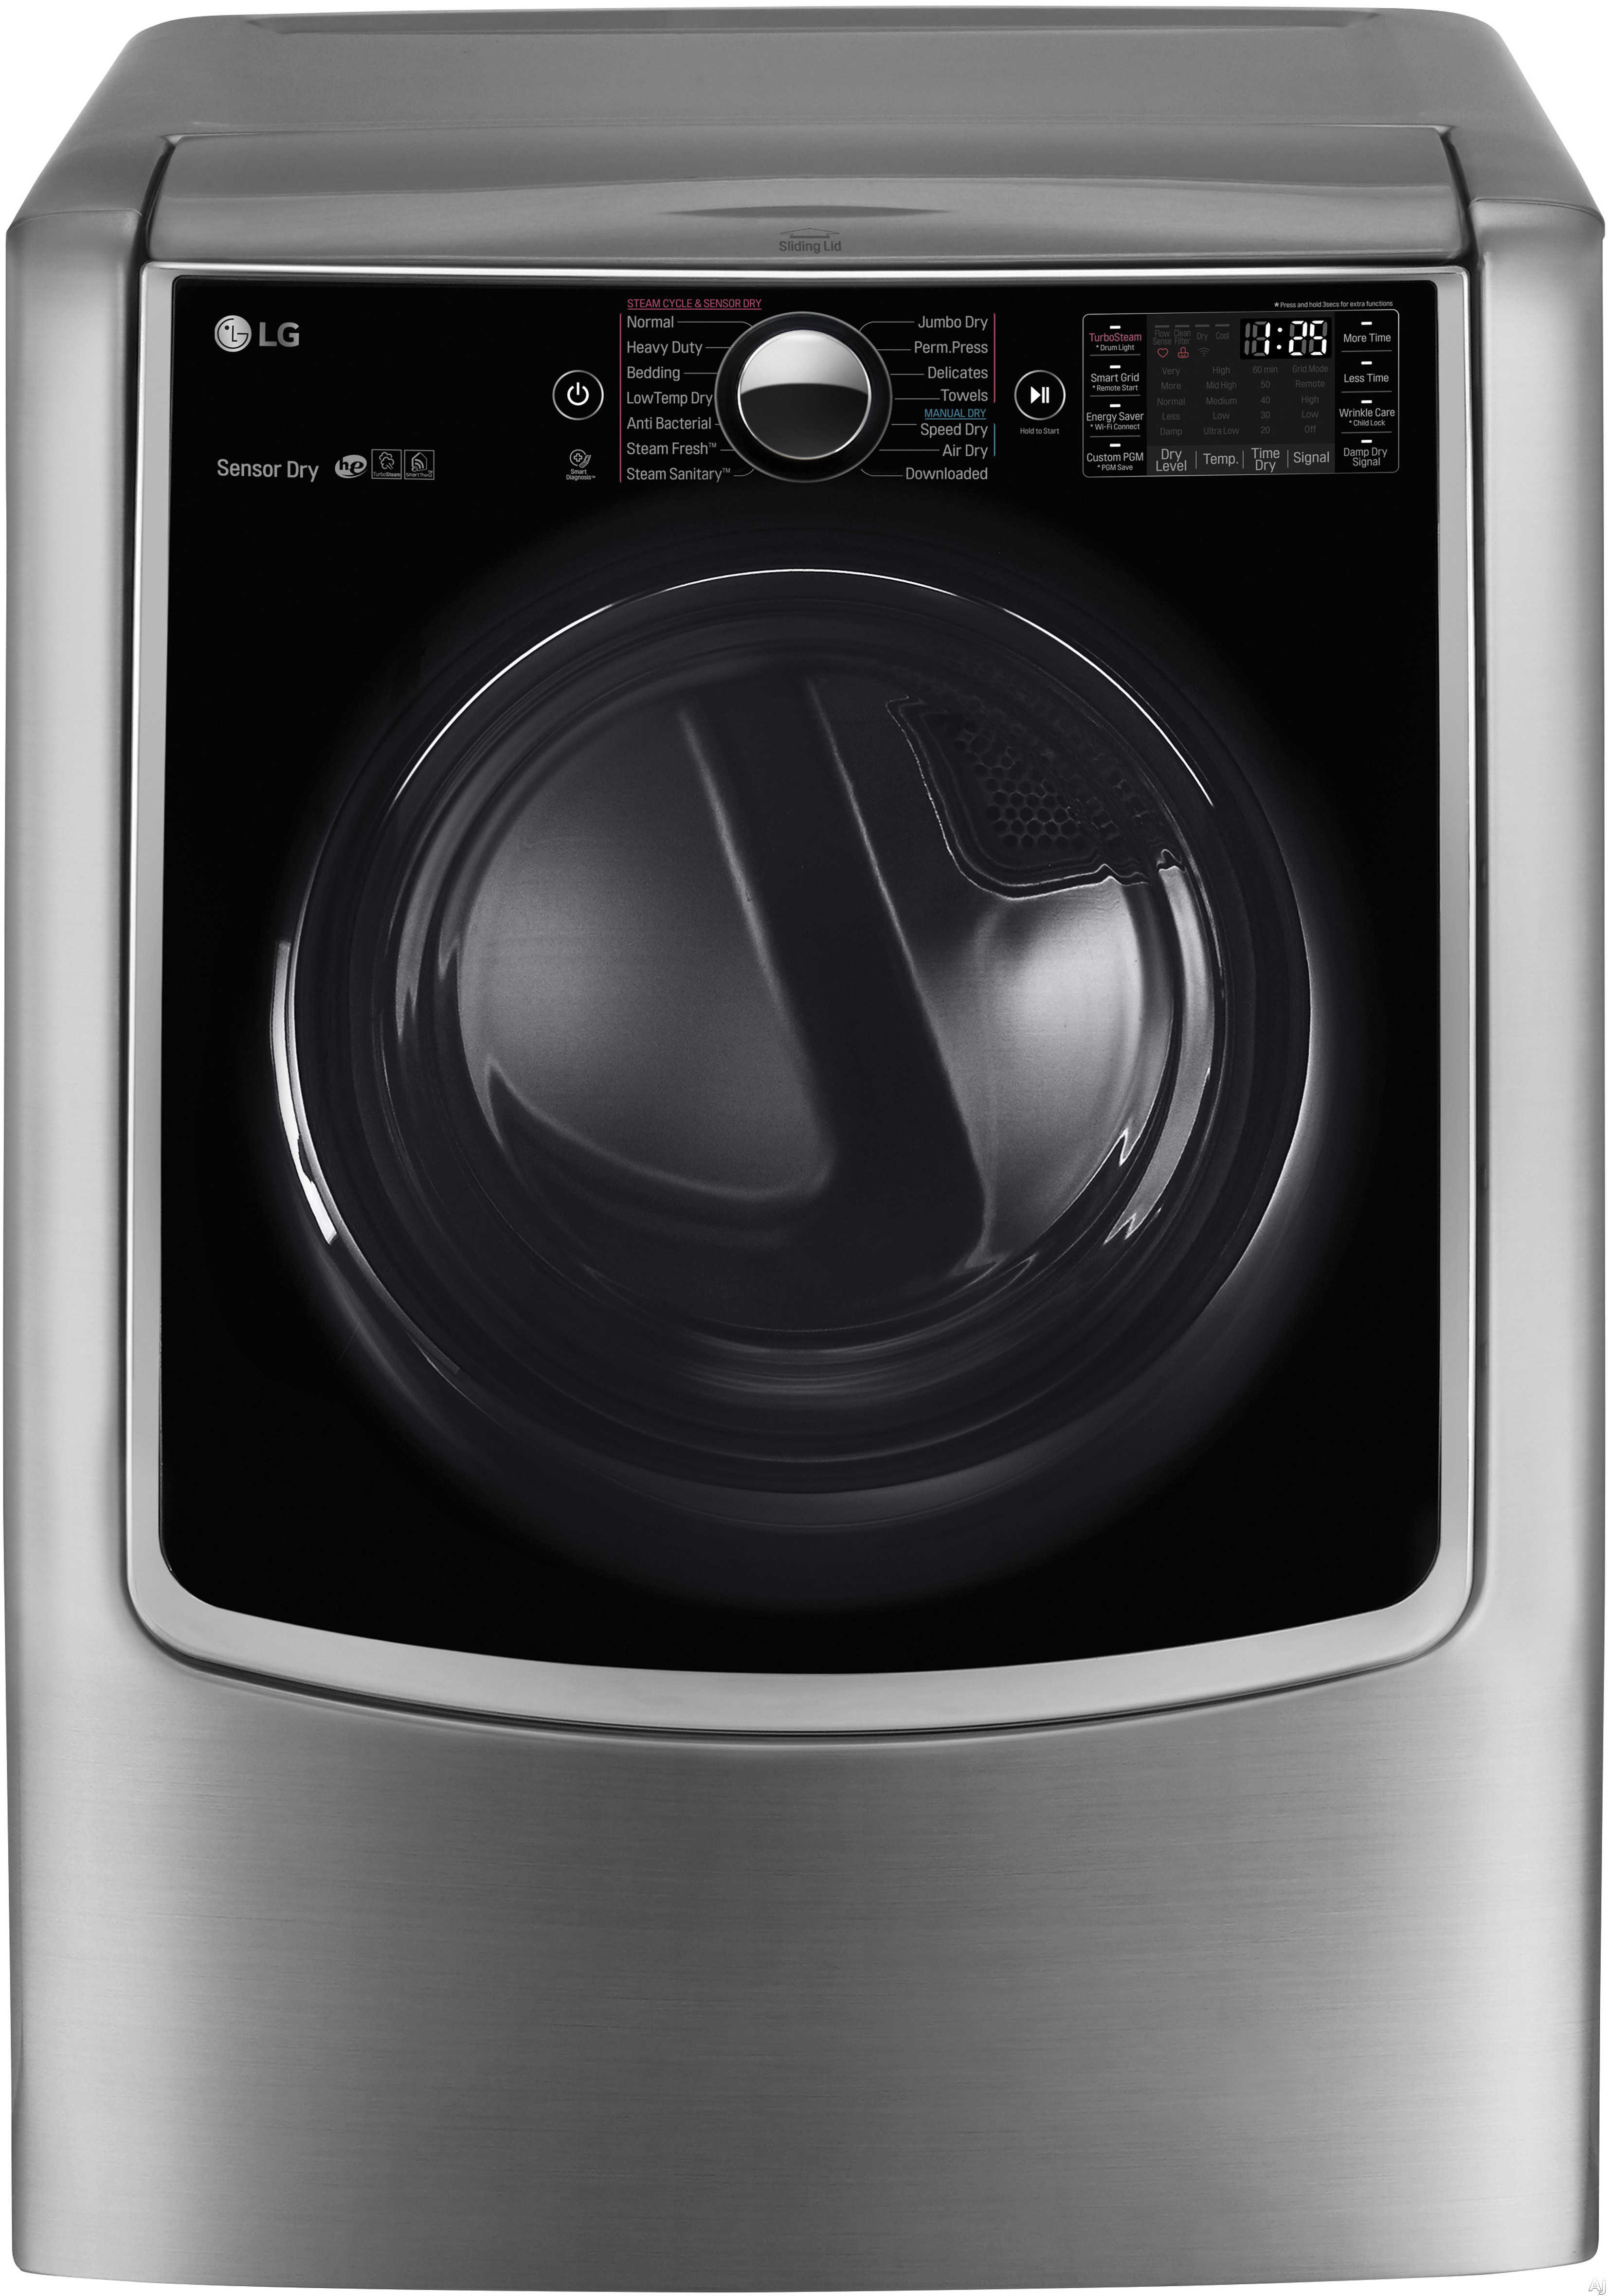 LG TurboSteam Series DLGX9001V 29 Inch 9.0 cu. ft. Gas Dryer with Sensor Dry TurboSteam Smart ThinQ 14 Dry Cycles 5 Temperature Selections Wrinkle Care Steam Fresh and ENERGY STAR Qualification Graphi